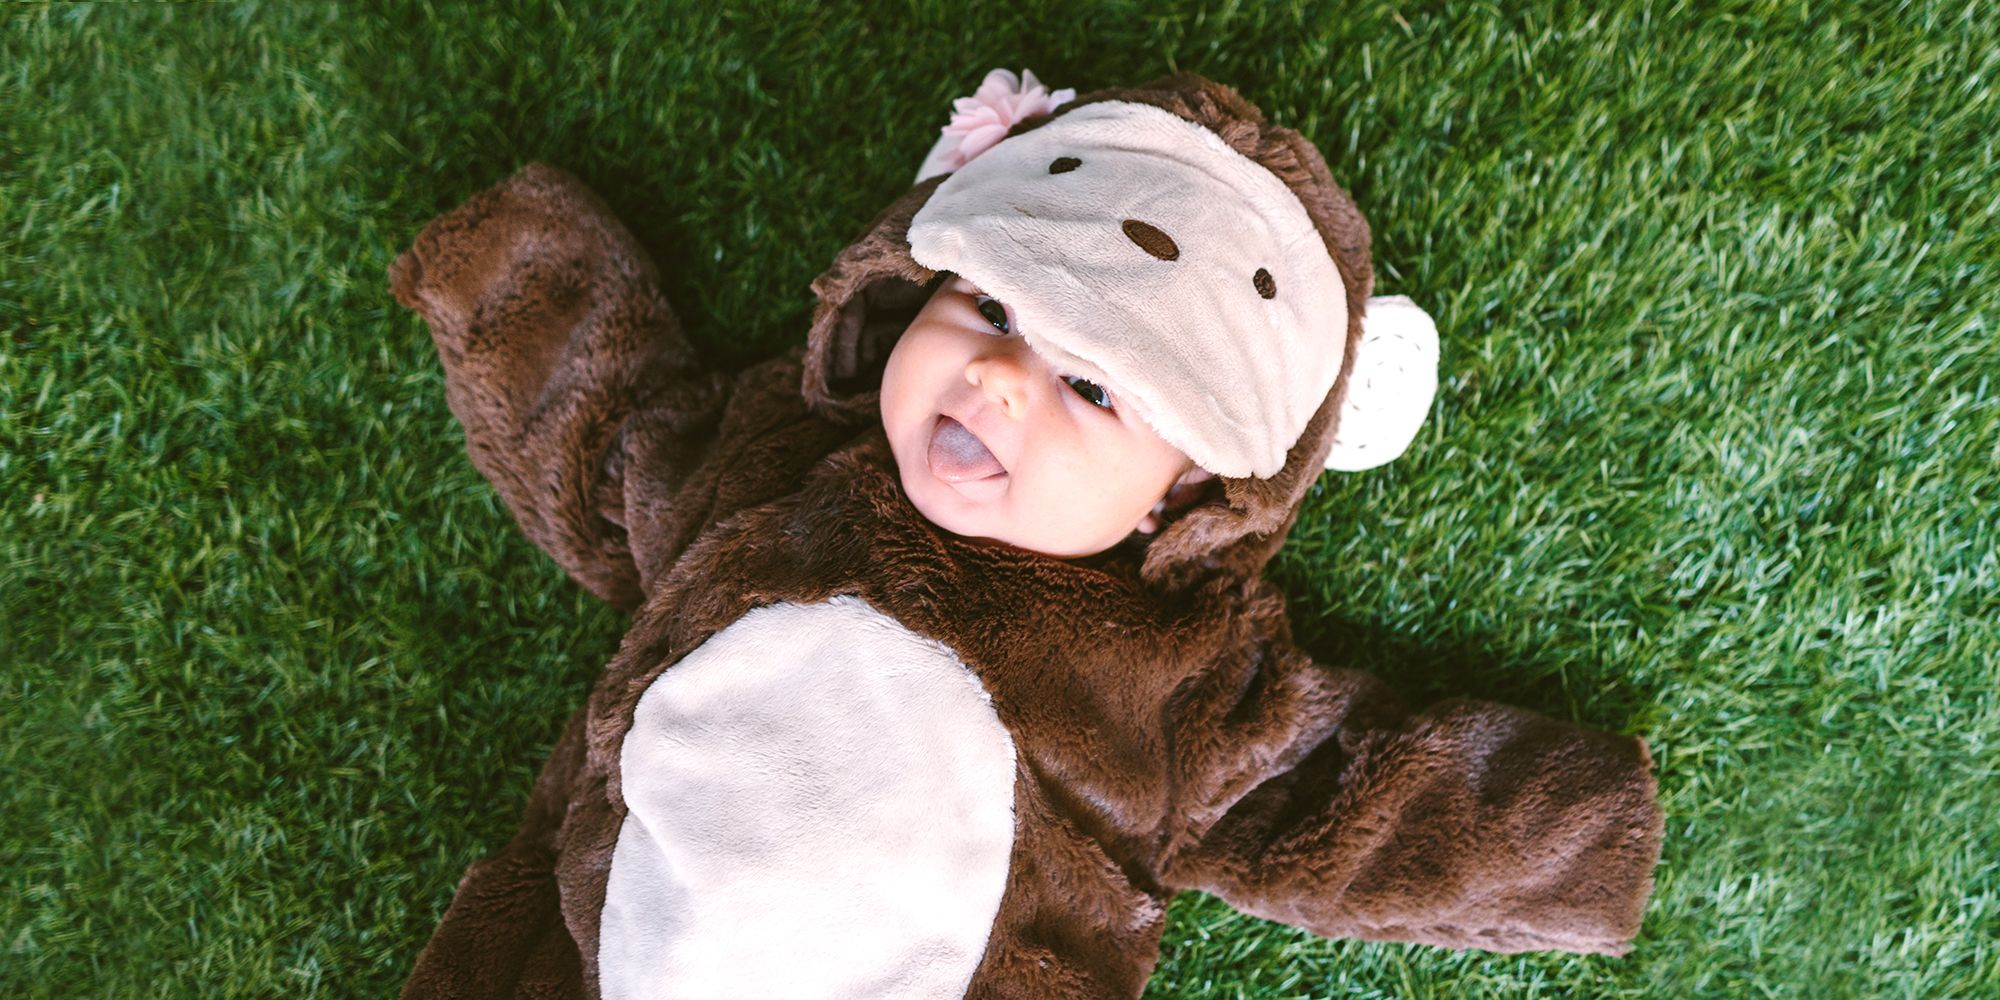 Little ones will look sweet but spooky in these halloween costumes for toddlers. 30 Best Baby Halloween Costumes Of 2021 Adorable Baby Costume Ideas